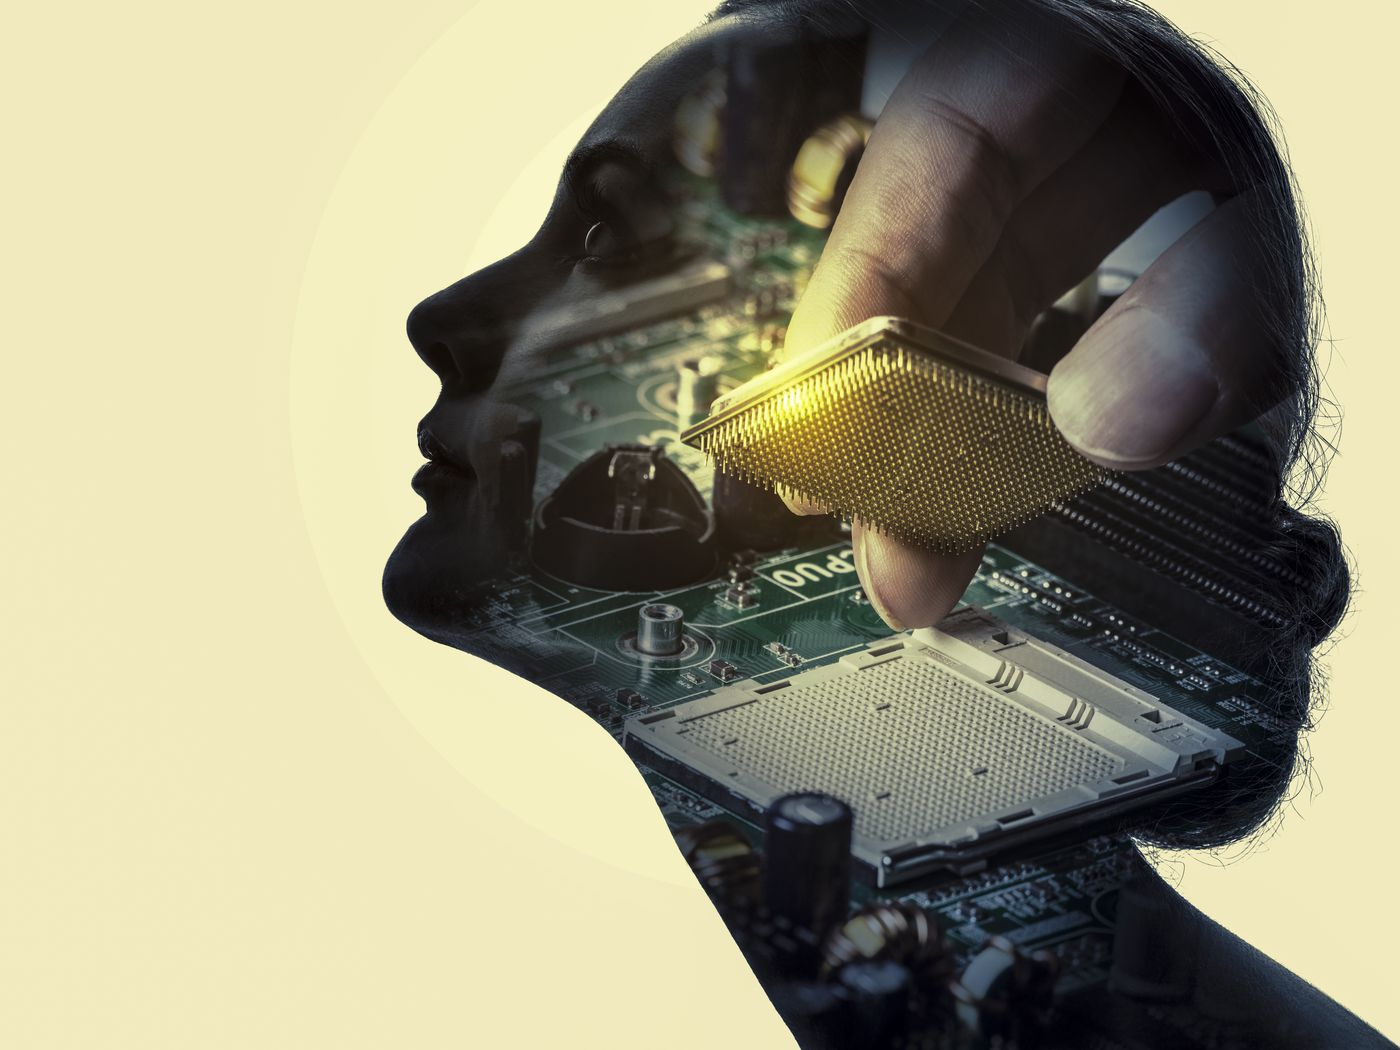 5 Strange Things Our Brains Are Programmed To Do